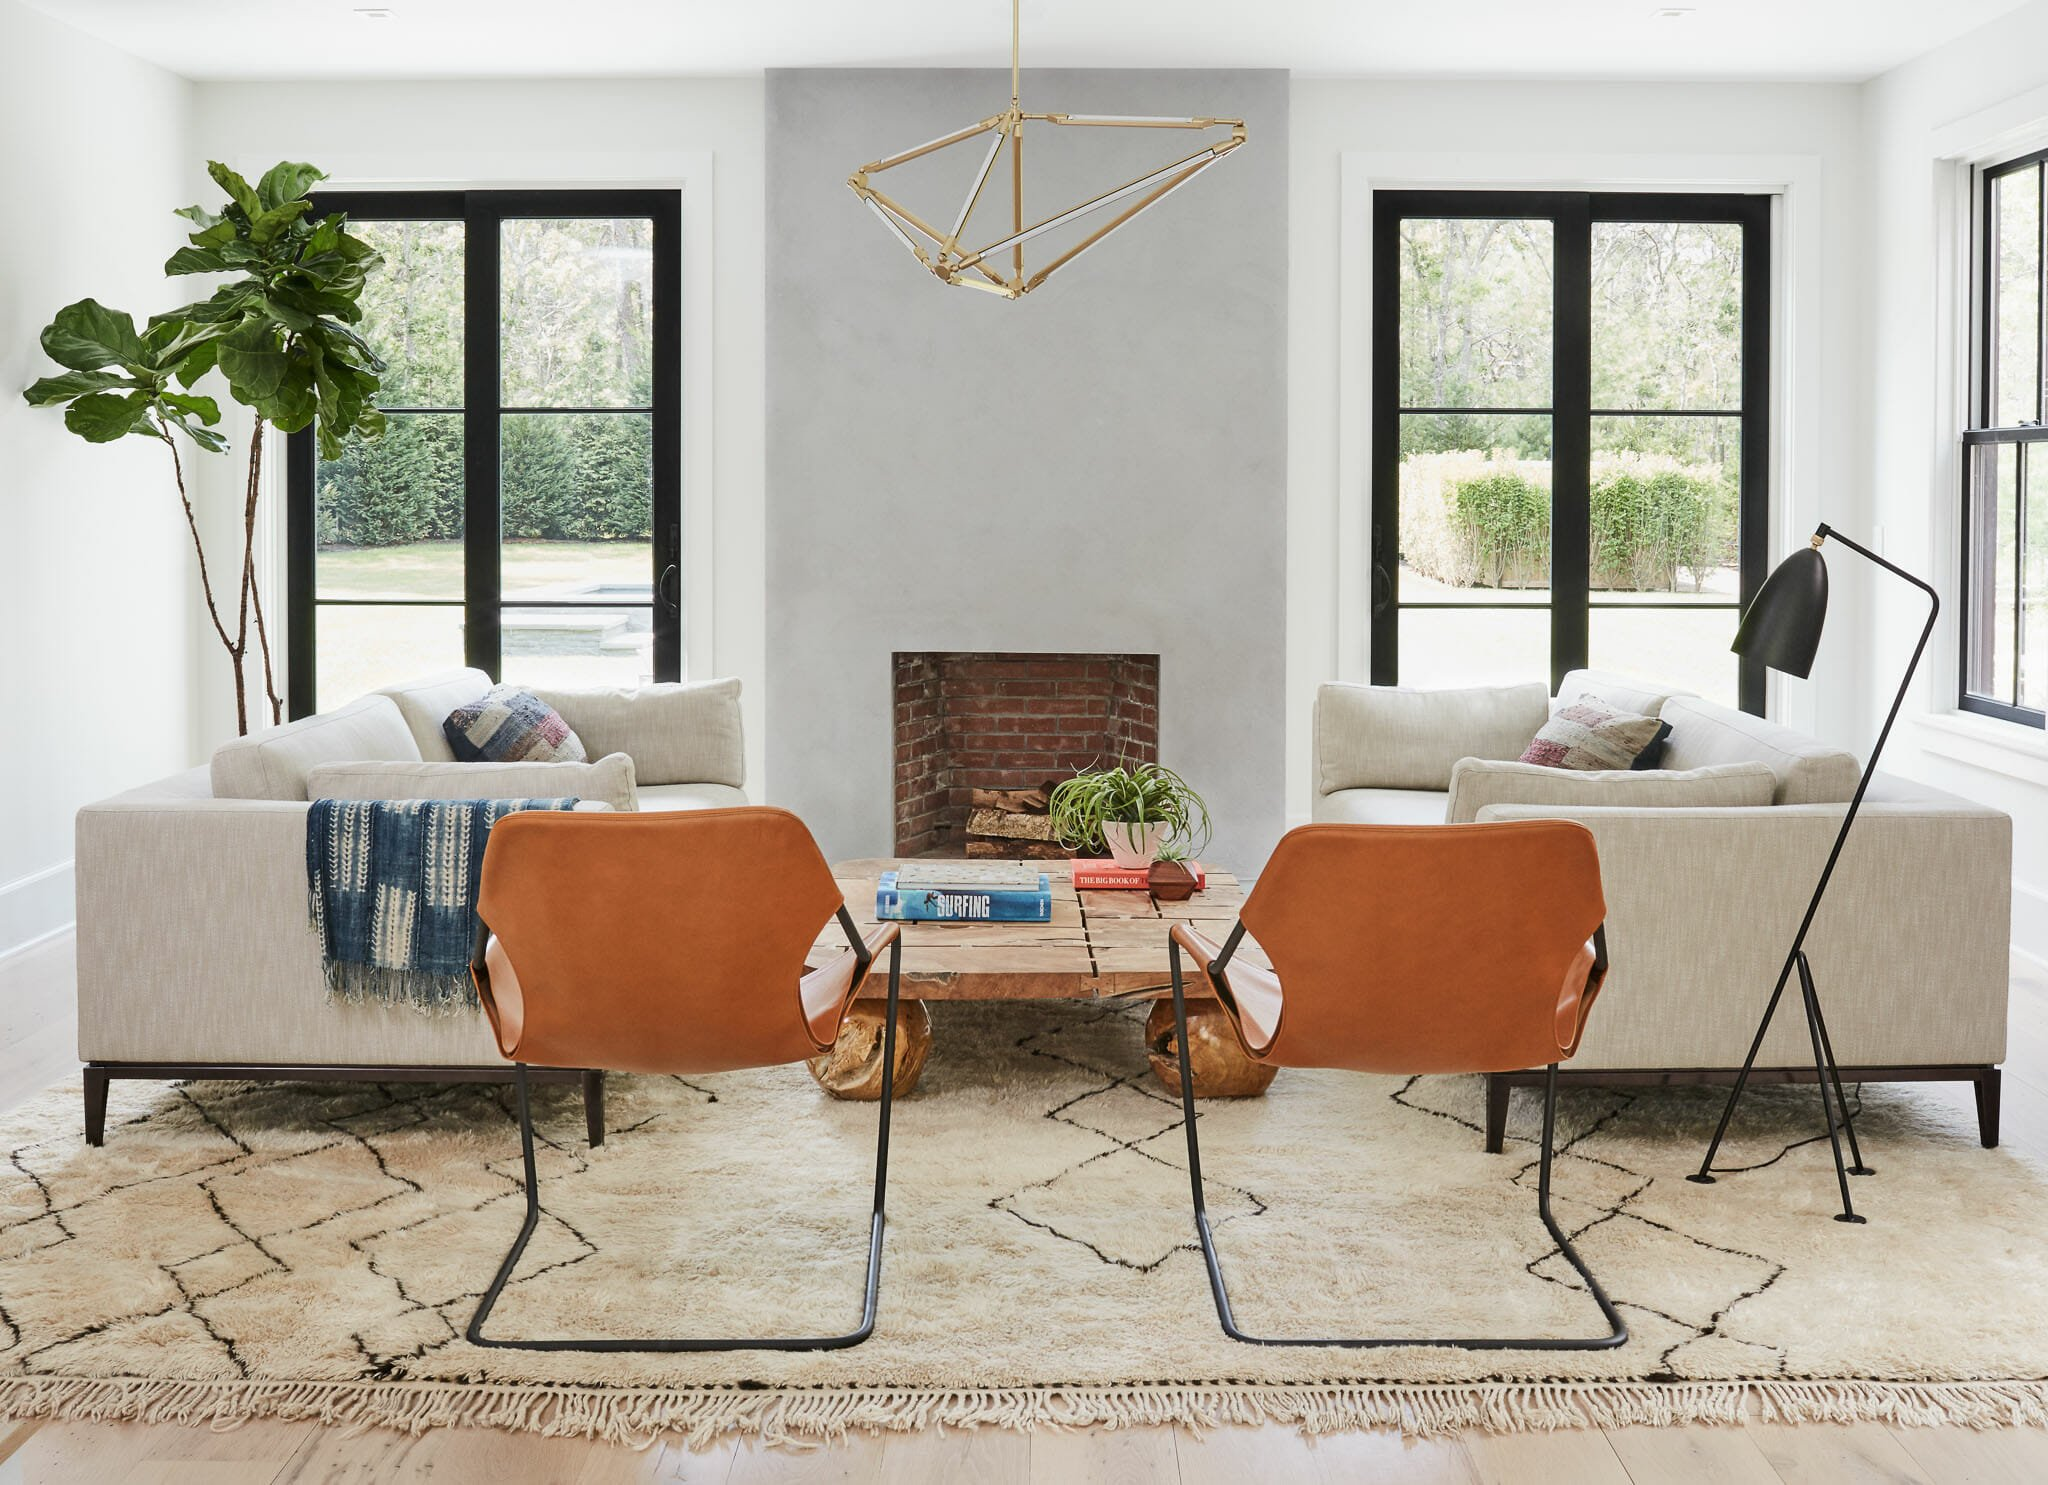 Top 7 Home Decor Trends to Try in 2019 | Decorilla